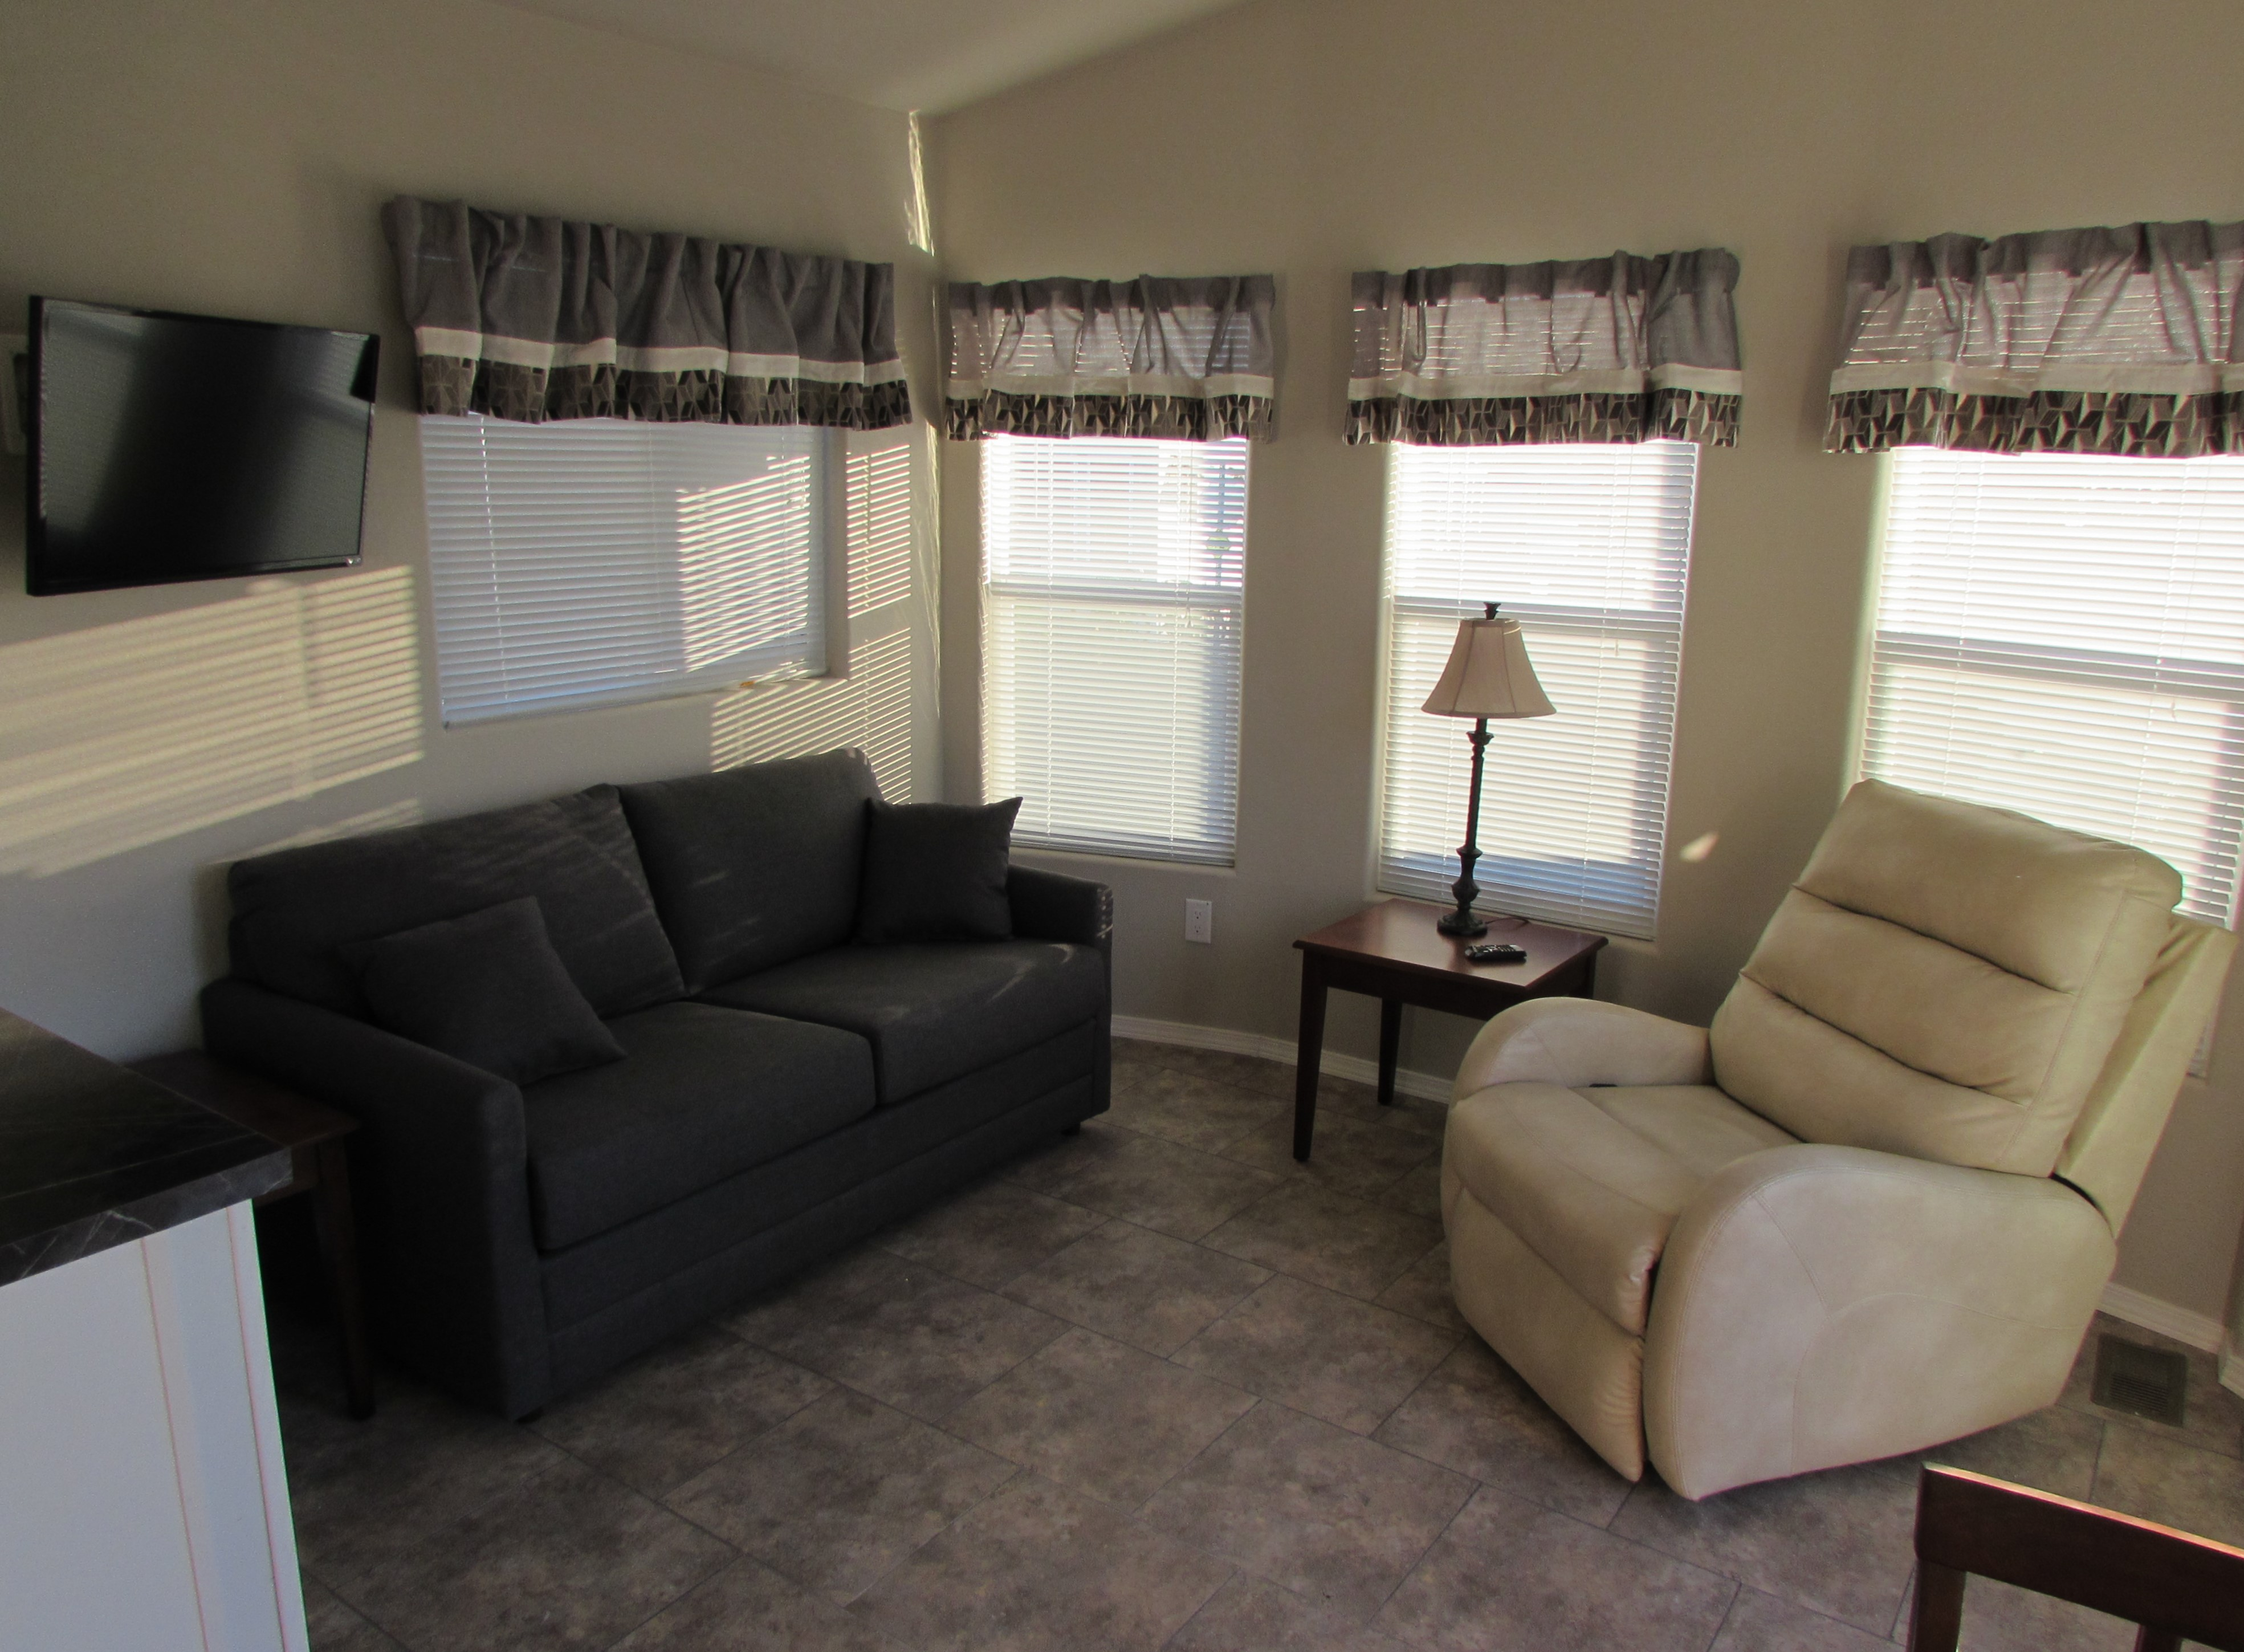 Westwind Rv Golf Resort Is Offering A Deluxe Park Model Made By Clayton Homes Featuring Ious Closet And Counter E In The Kitchen